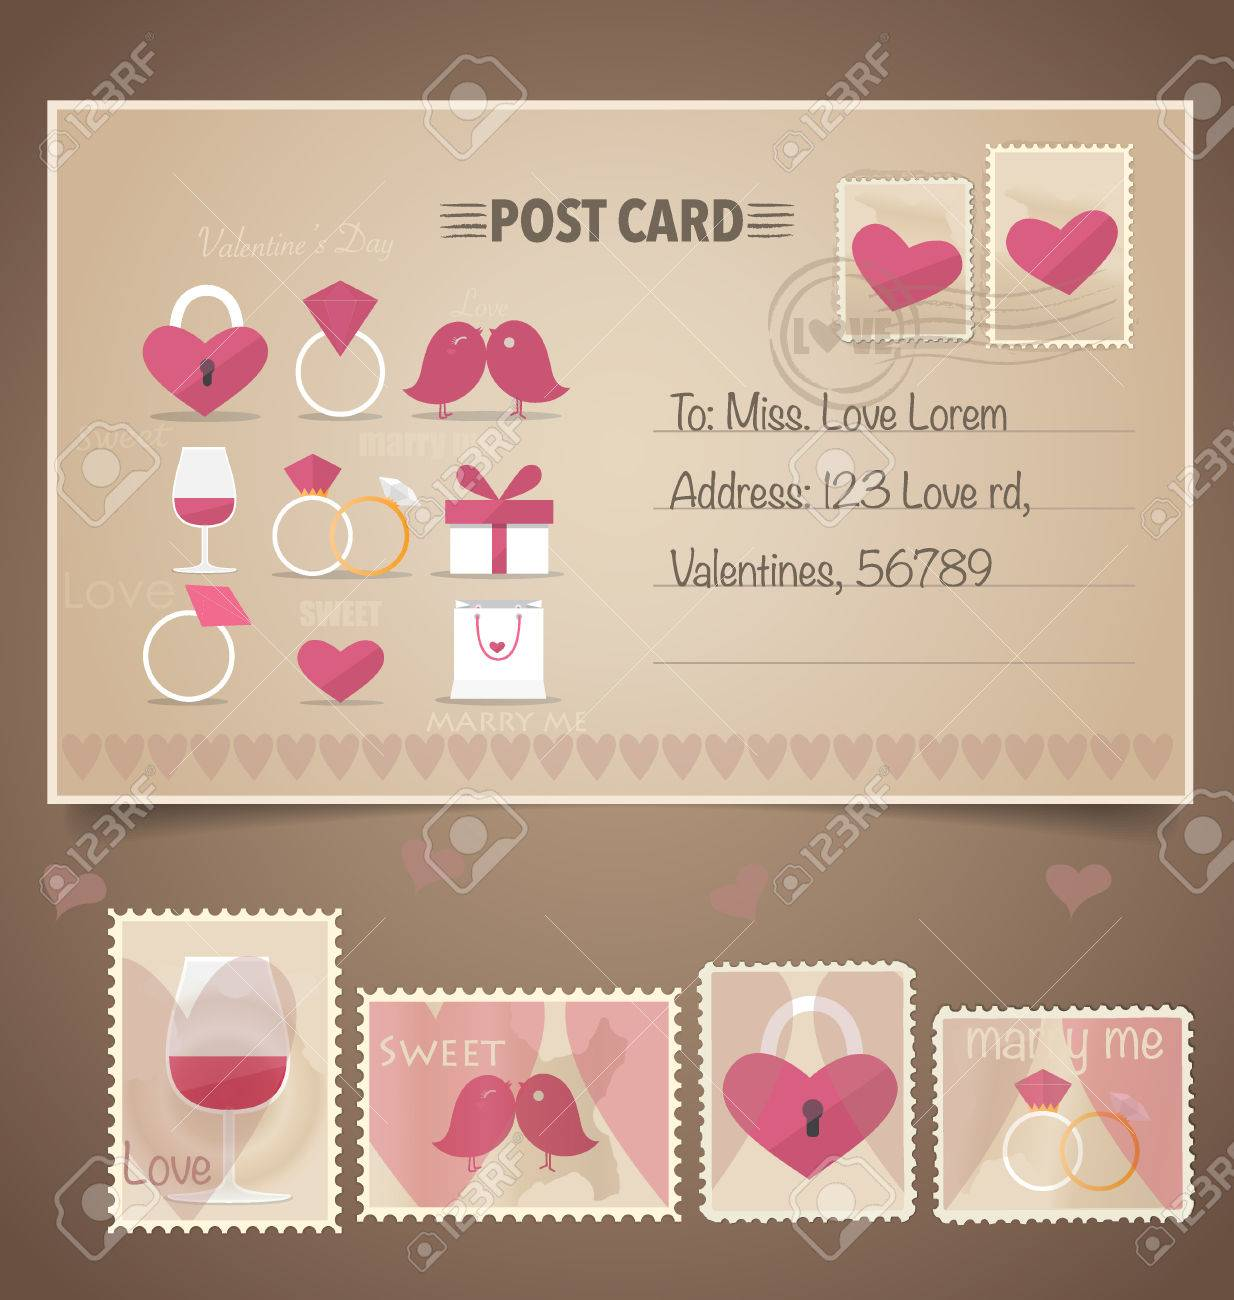 Vintage postcard background and postage stamps for wedding vintage postcard background and postage stamps for wedding card design invitation card design monicamarmolfo Gallery